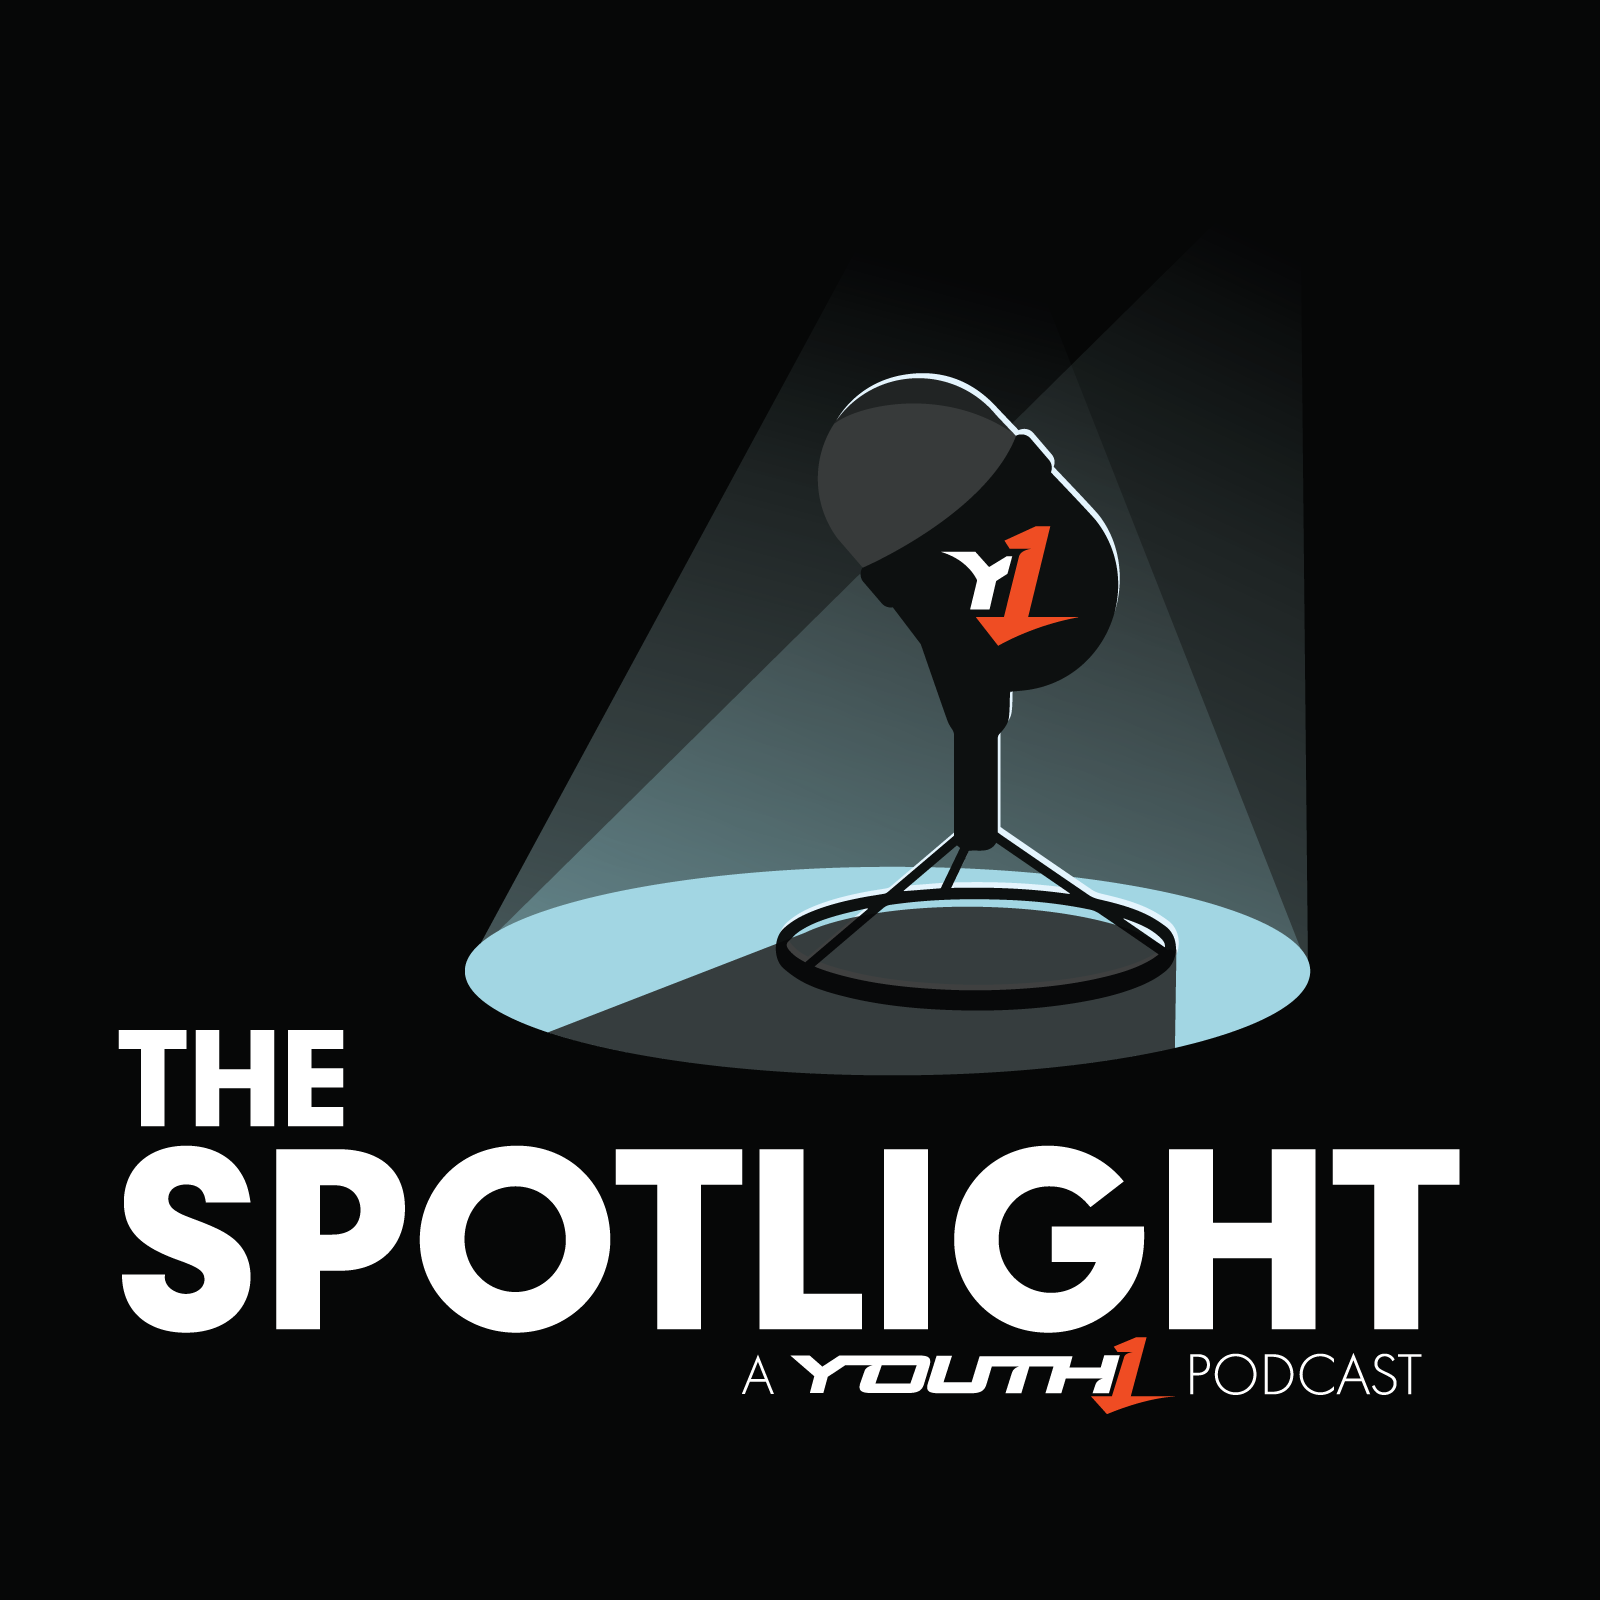 The Spotlight a Youth1 Podcast